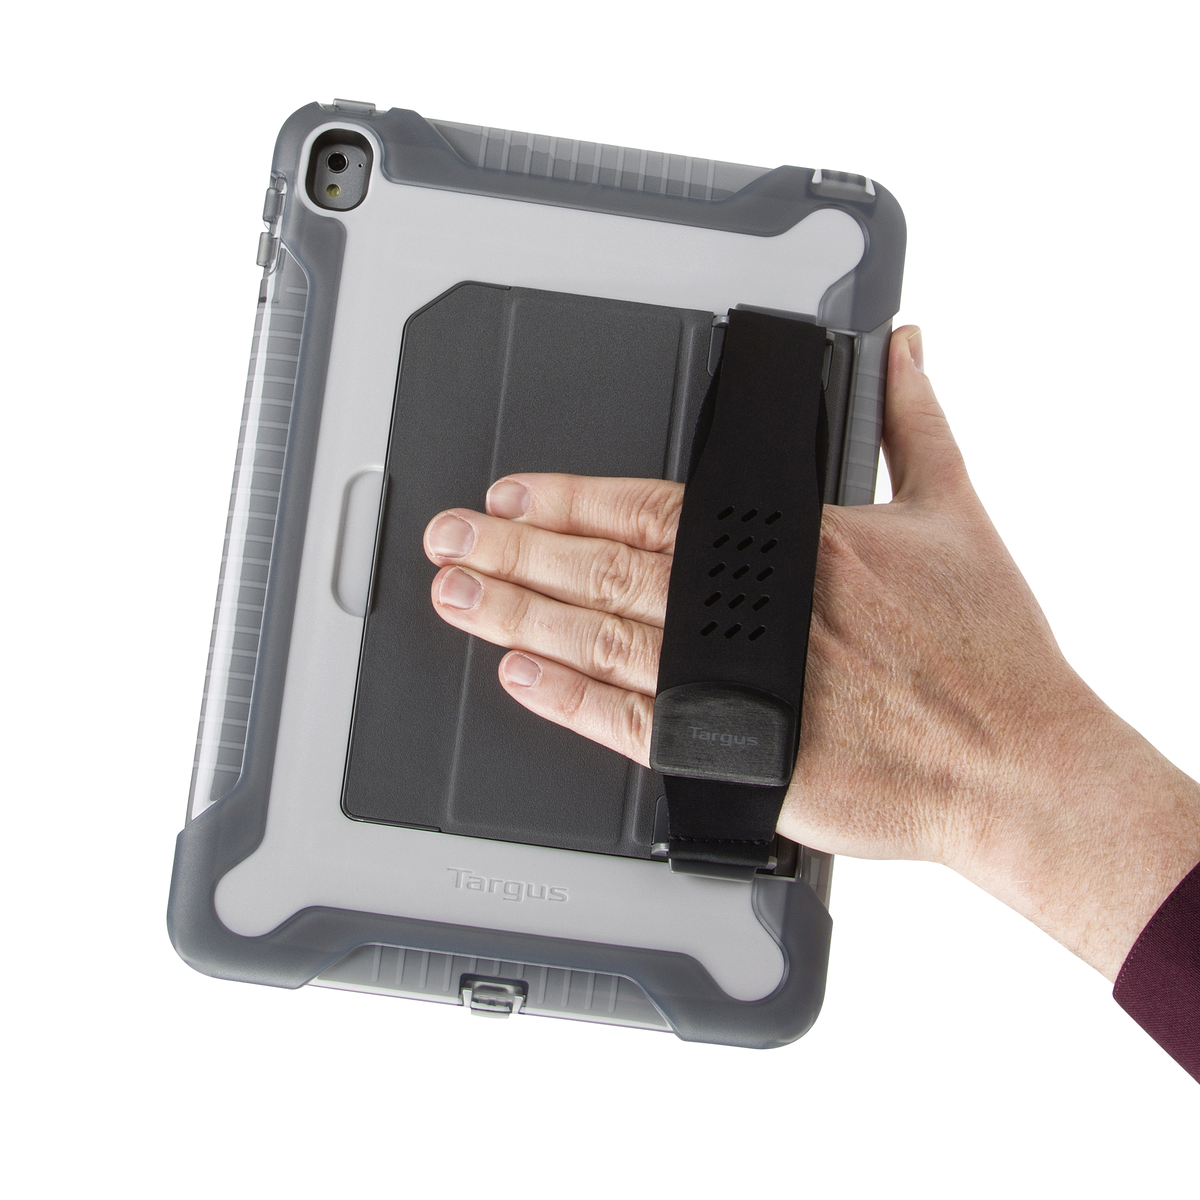 the latest e2513 70b97 SafePort® Rugged Case for iPad® (6th gen./5th gen.), iPad Pro® (9.7-inch),  and iPad Air® 2 (White/Gray)